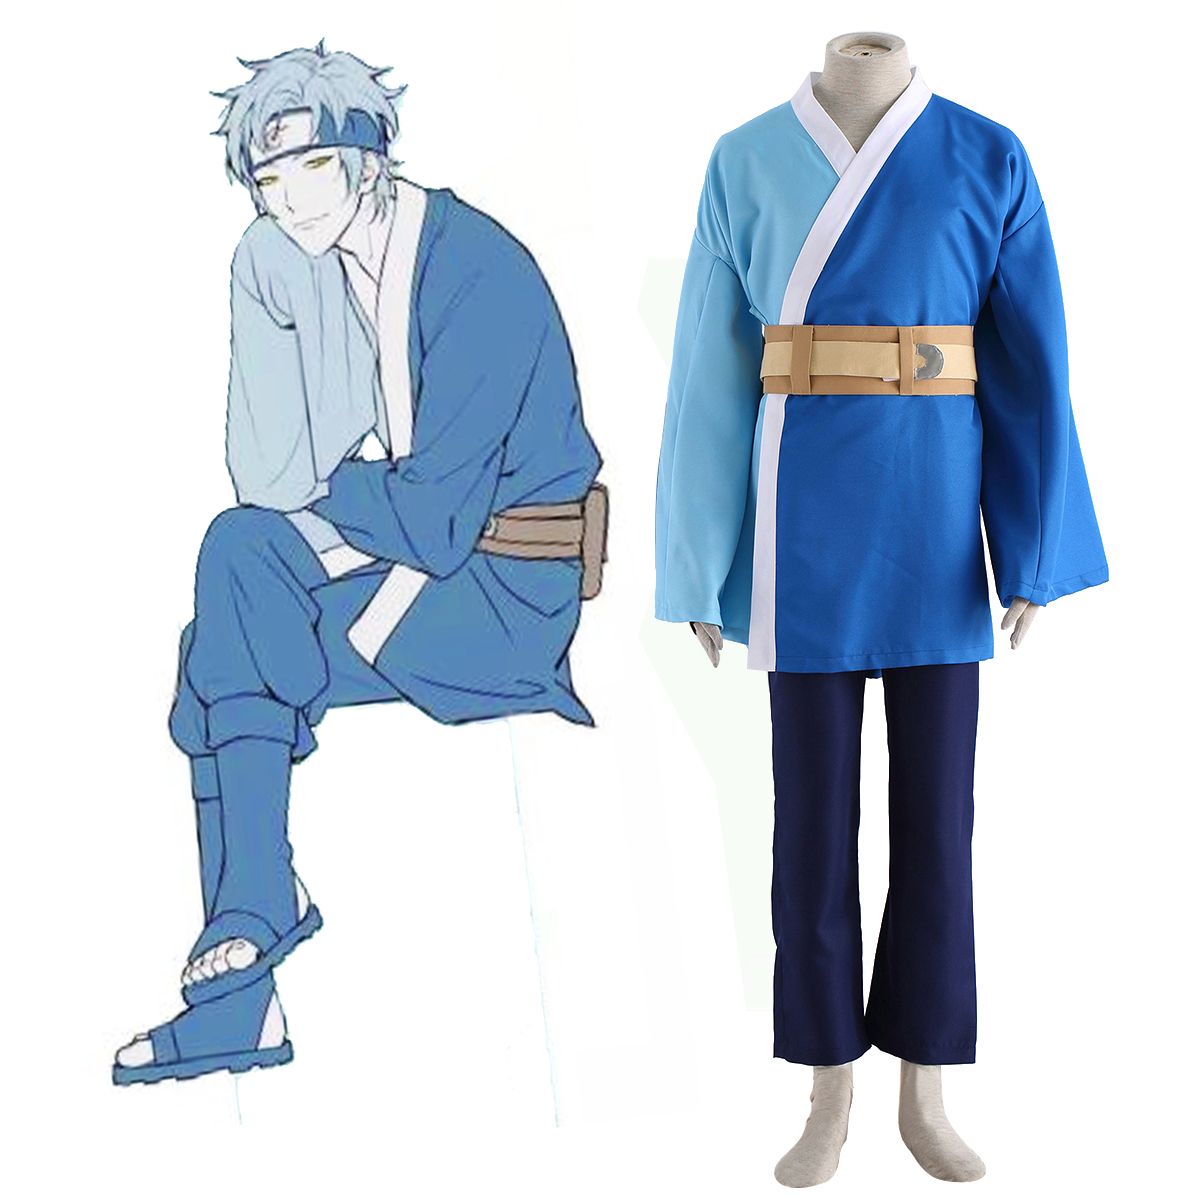 Naruto Mitsuki 1 Anime Cosplay Costumes Outfit